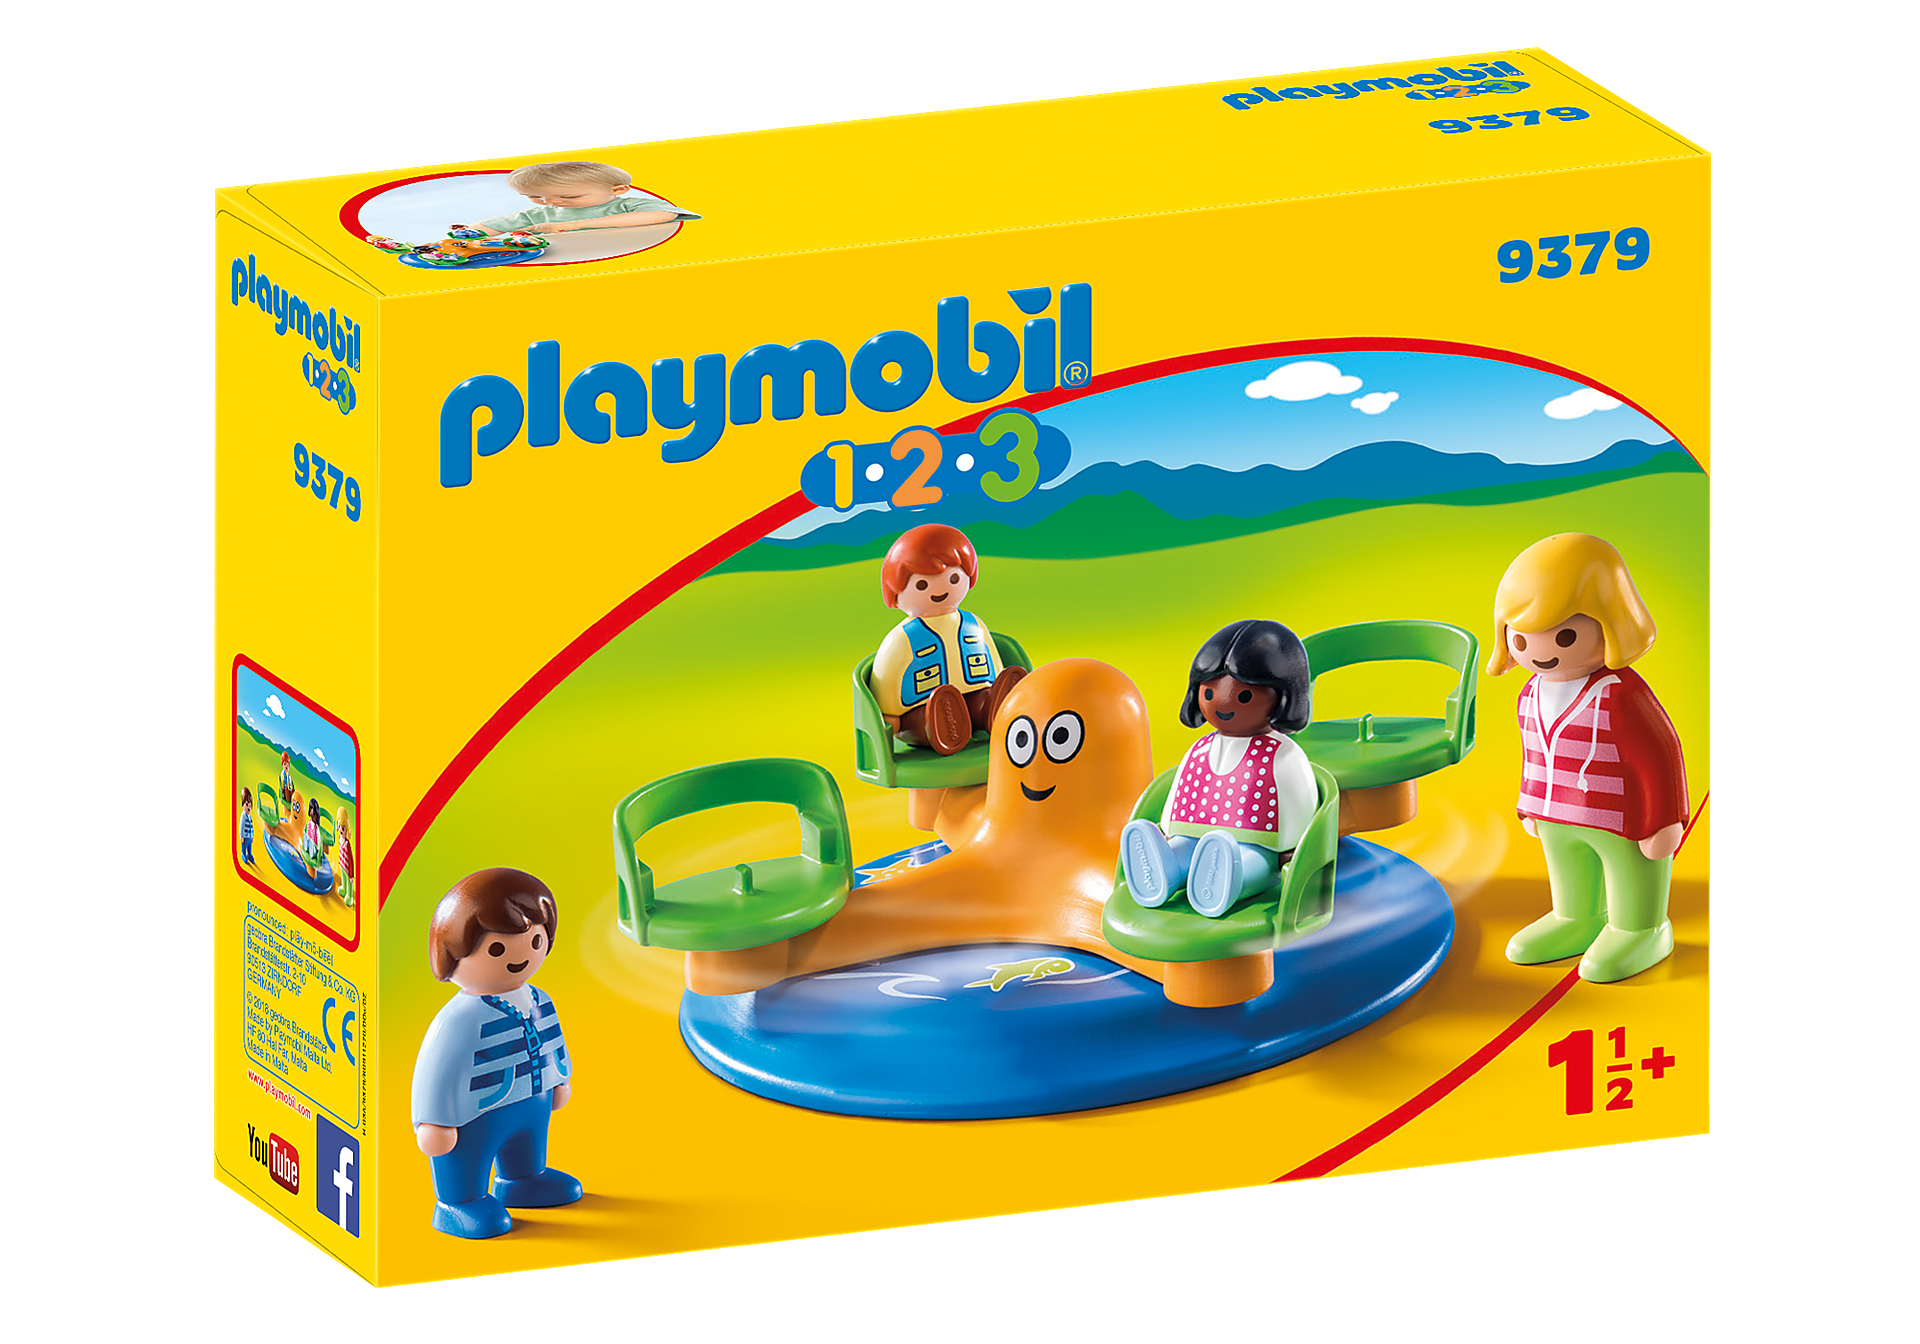 http://media.playmobil.com/i/playmobil/9379_product_box_front/Giostra dei bambini 1.2.3